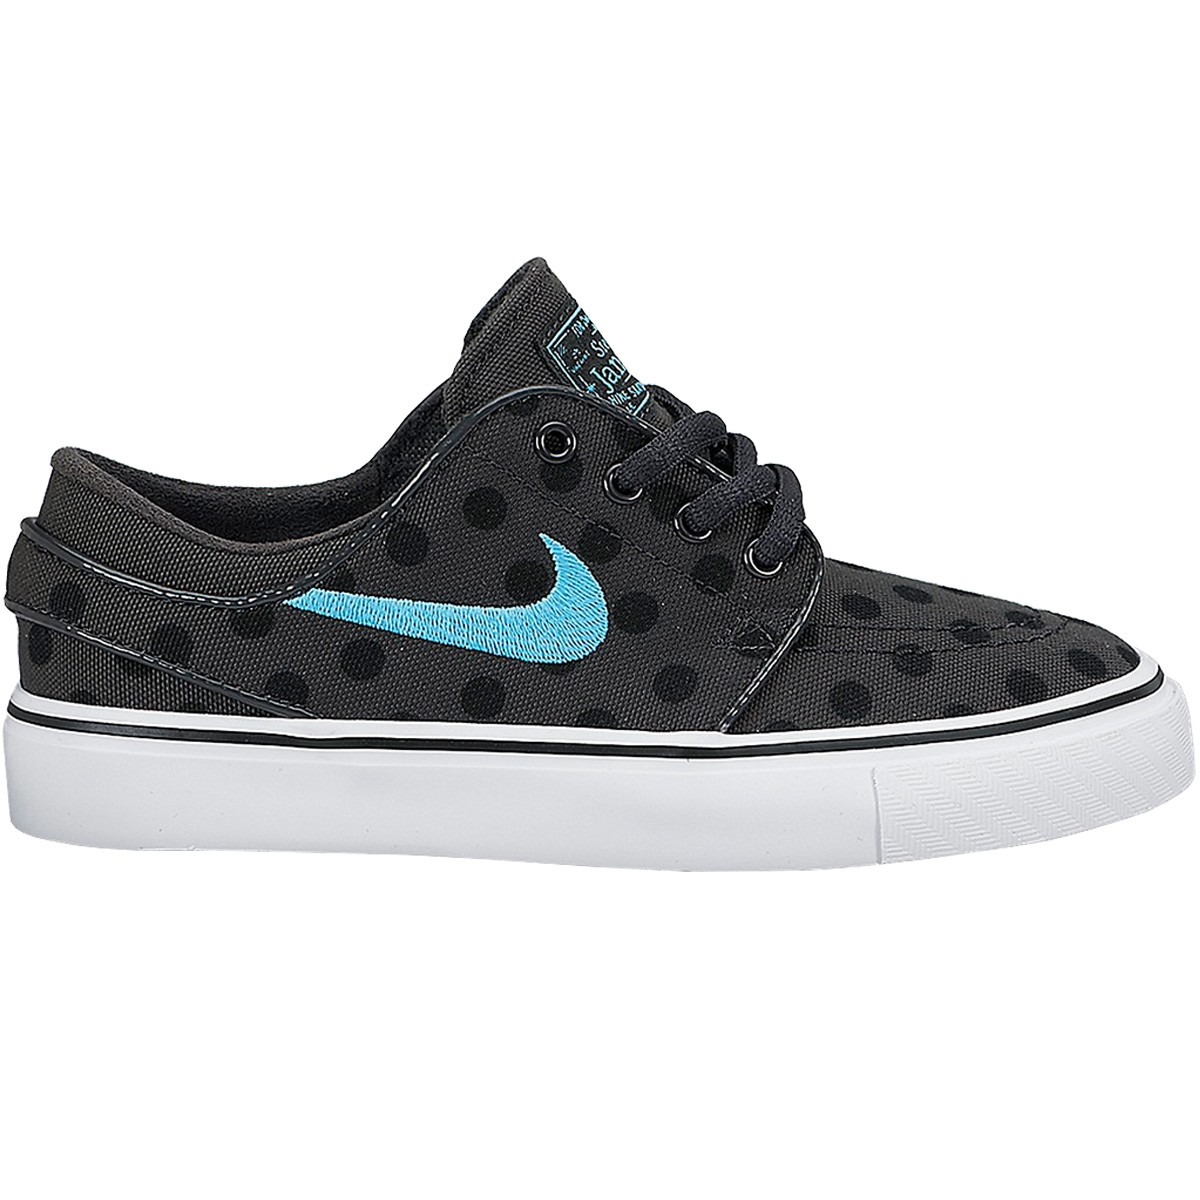 Nike Stefan Janoski Prem Canvas Big Kid Shoes - Anthracite/Black/Clearwater - 5.0